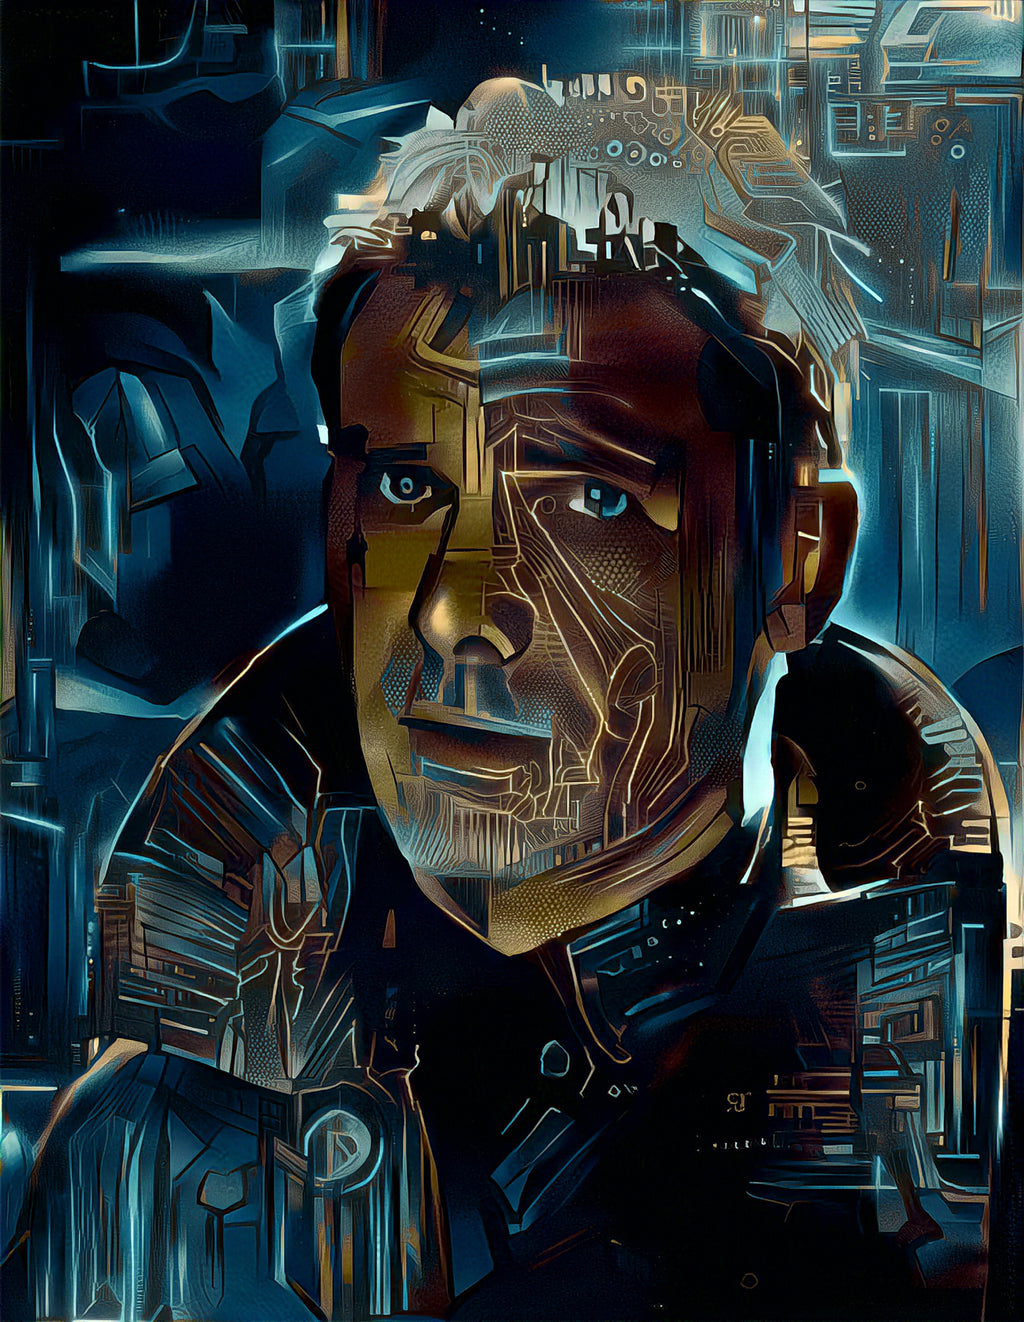 Blade Runner - Richard Deckard (Harrison Ford)